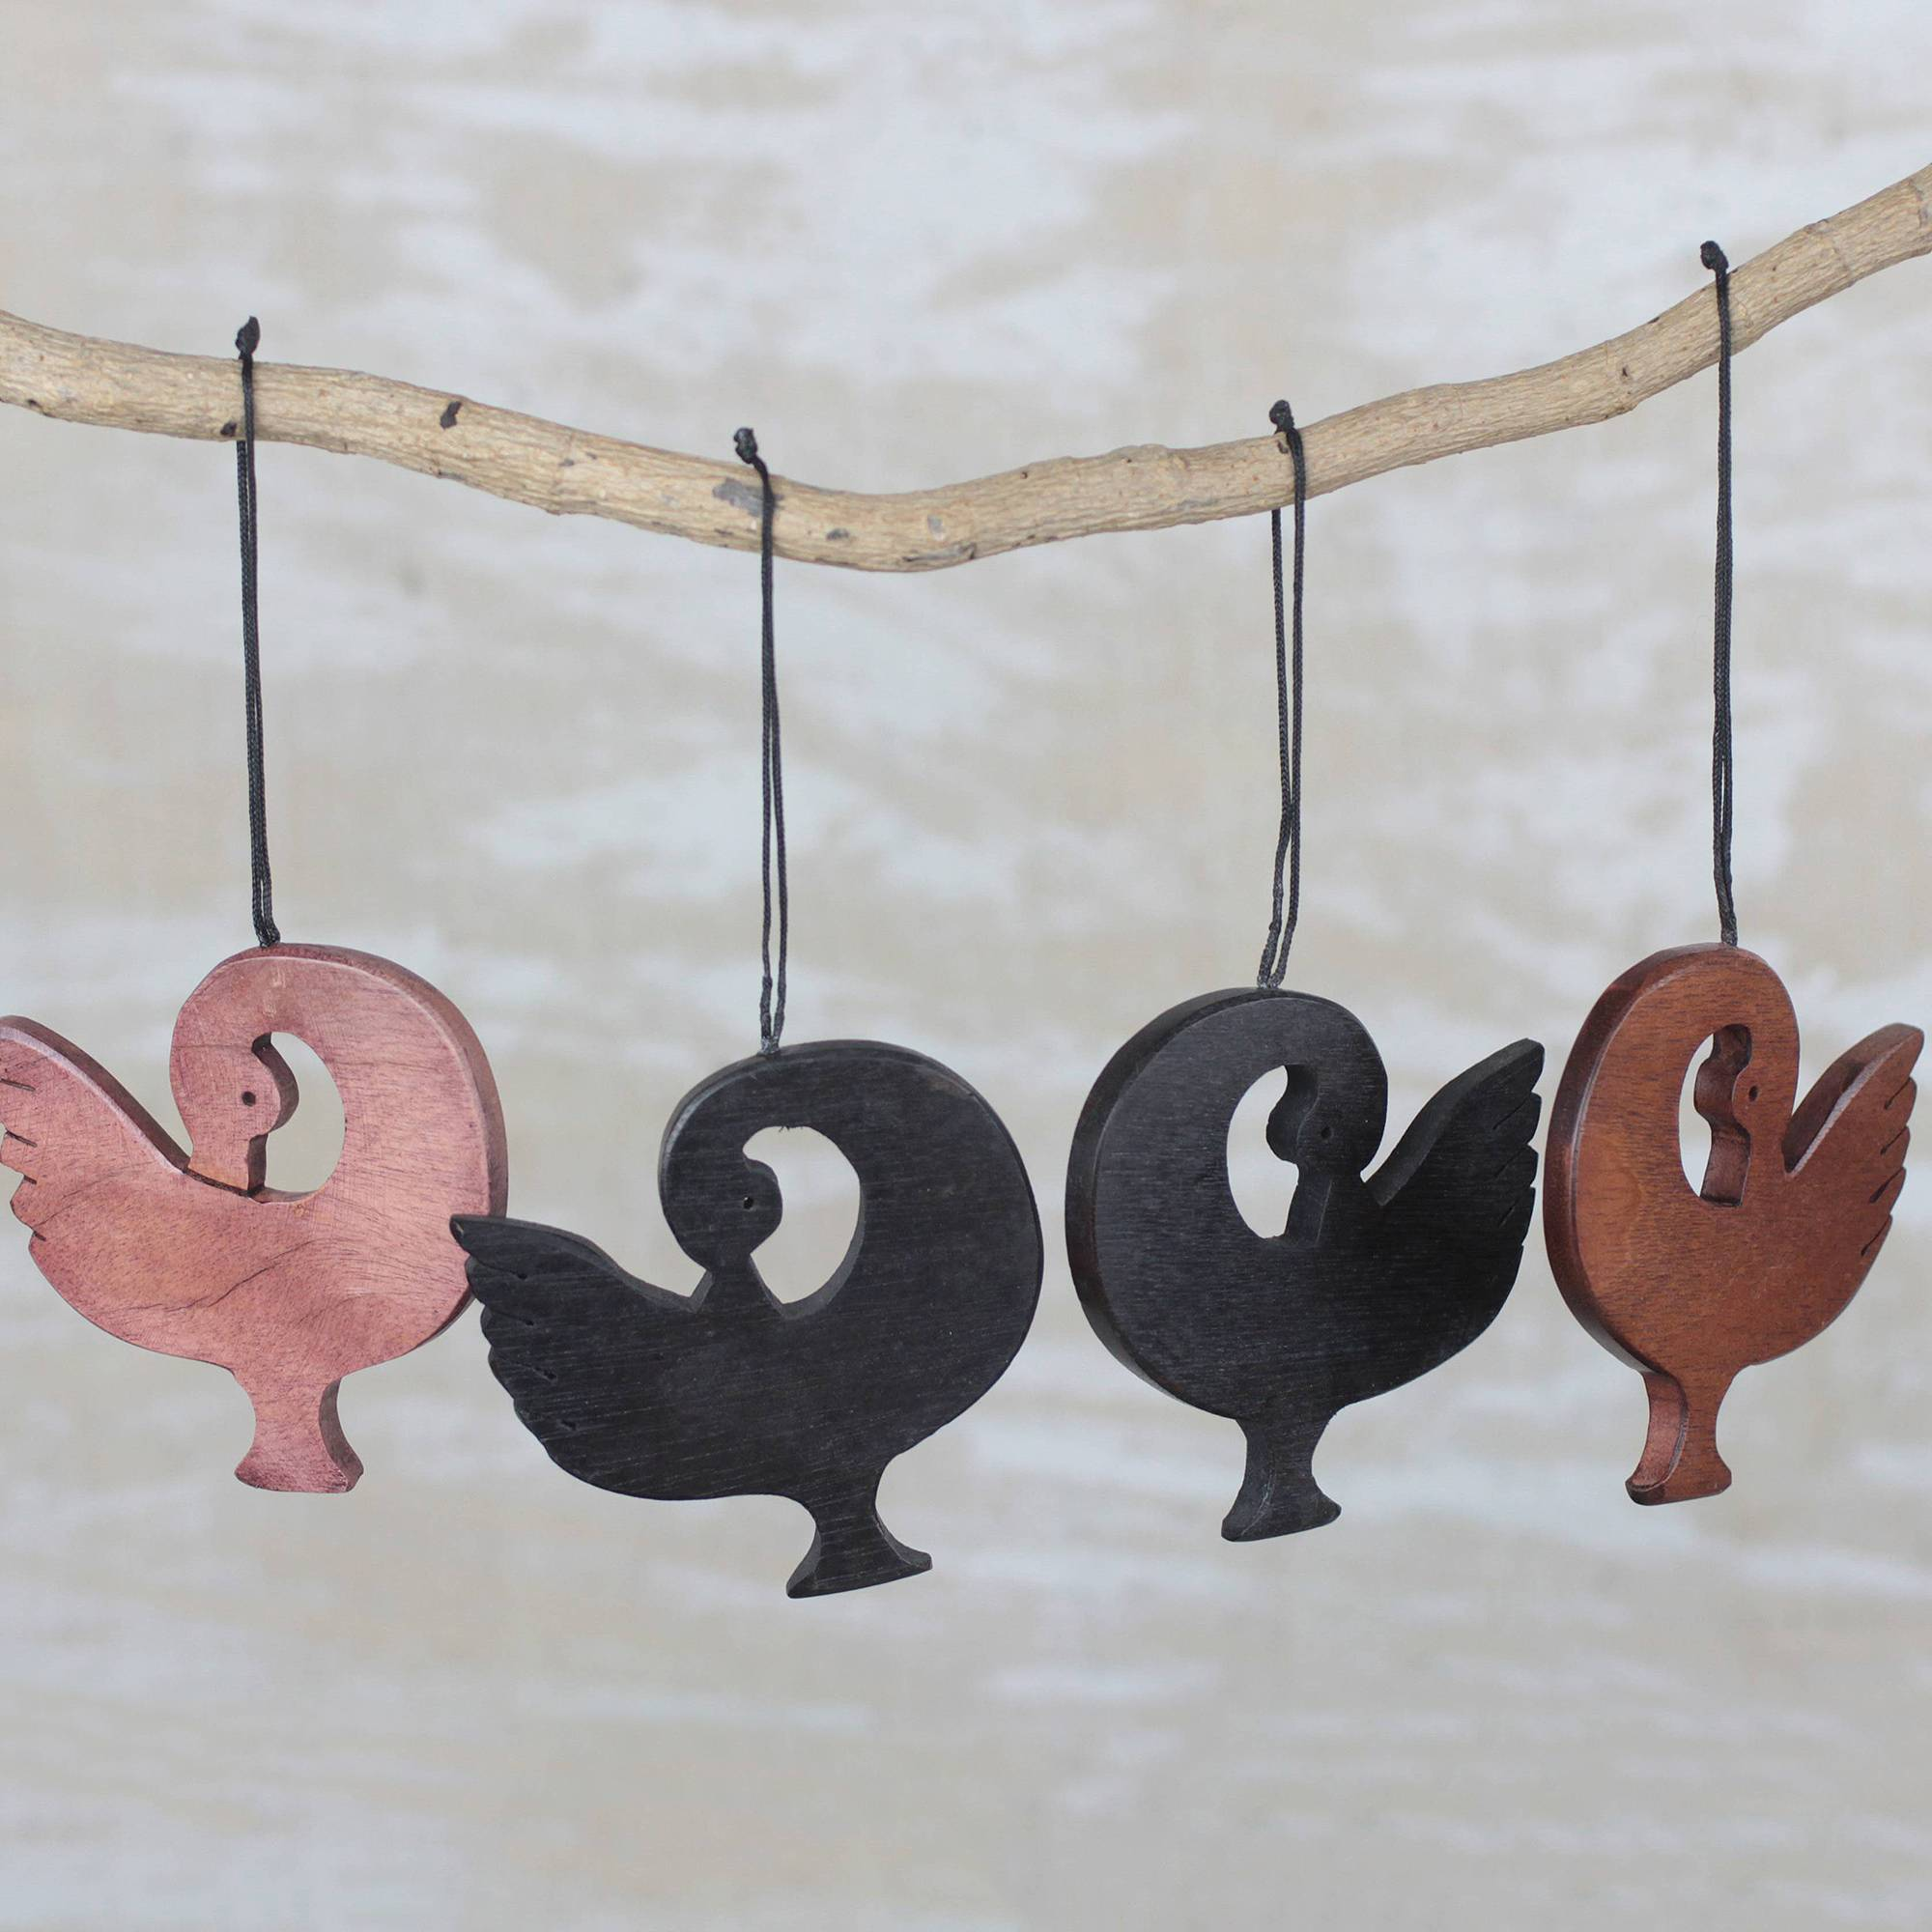 Handcrafted Ebony Wood Sankofa Ornaments (Set of 4), 'Learn from History'